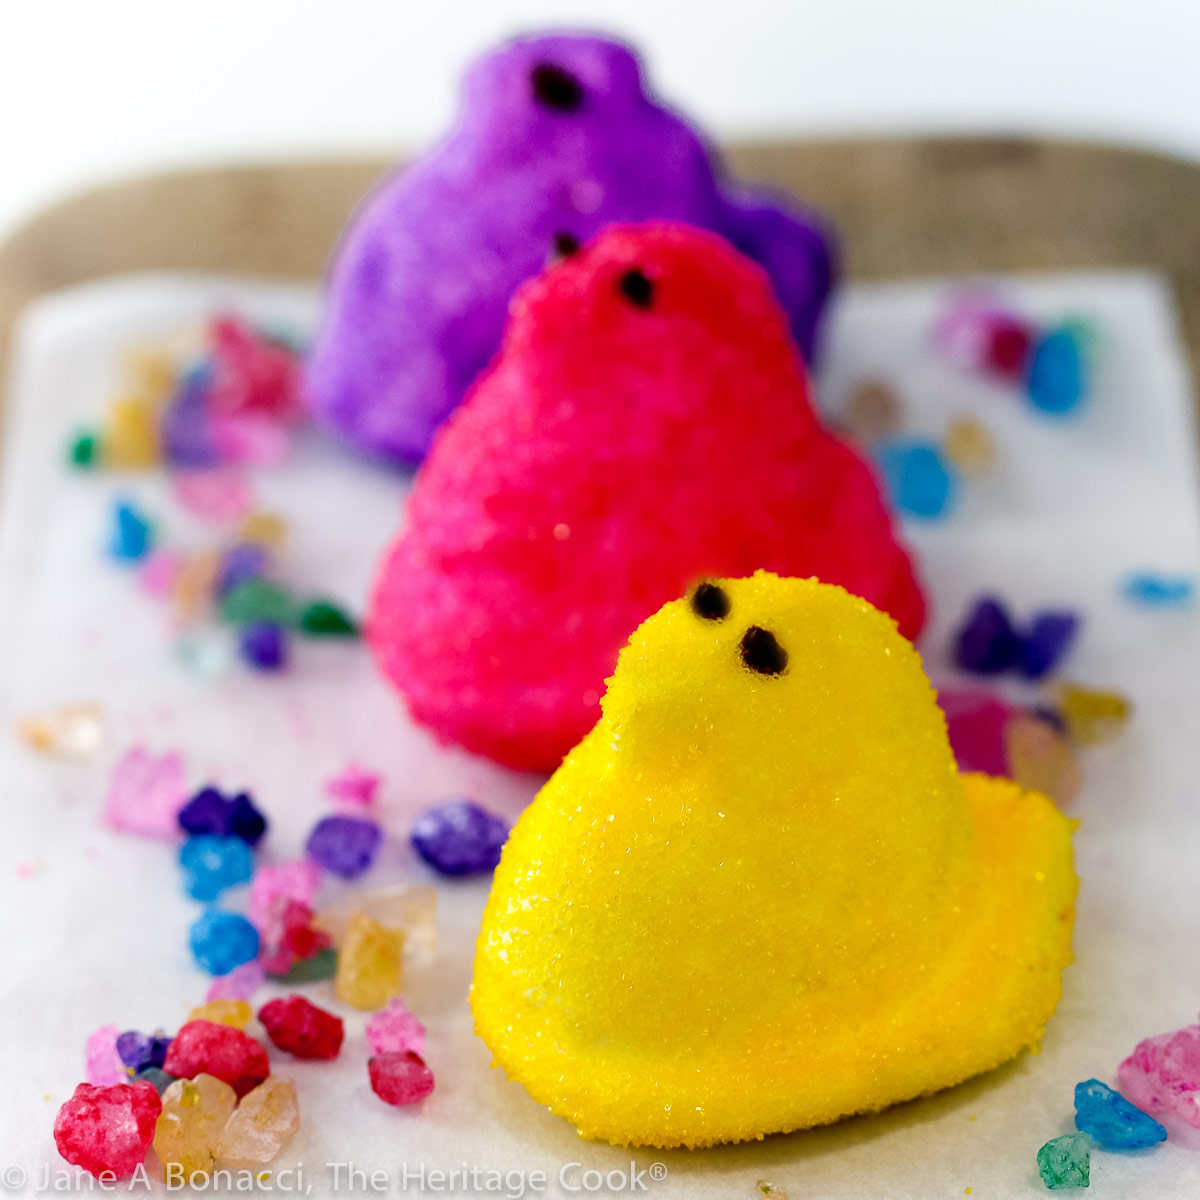 Homemade Marshmallow Peeps; @ 2021 Jane Bonacci, The Heritage Cook